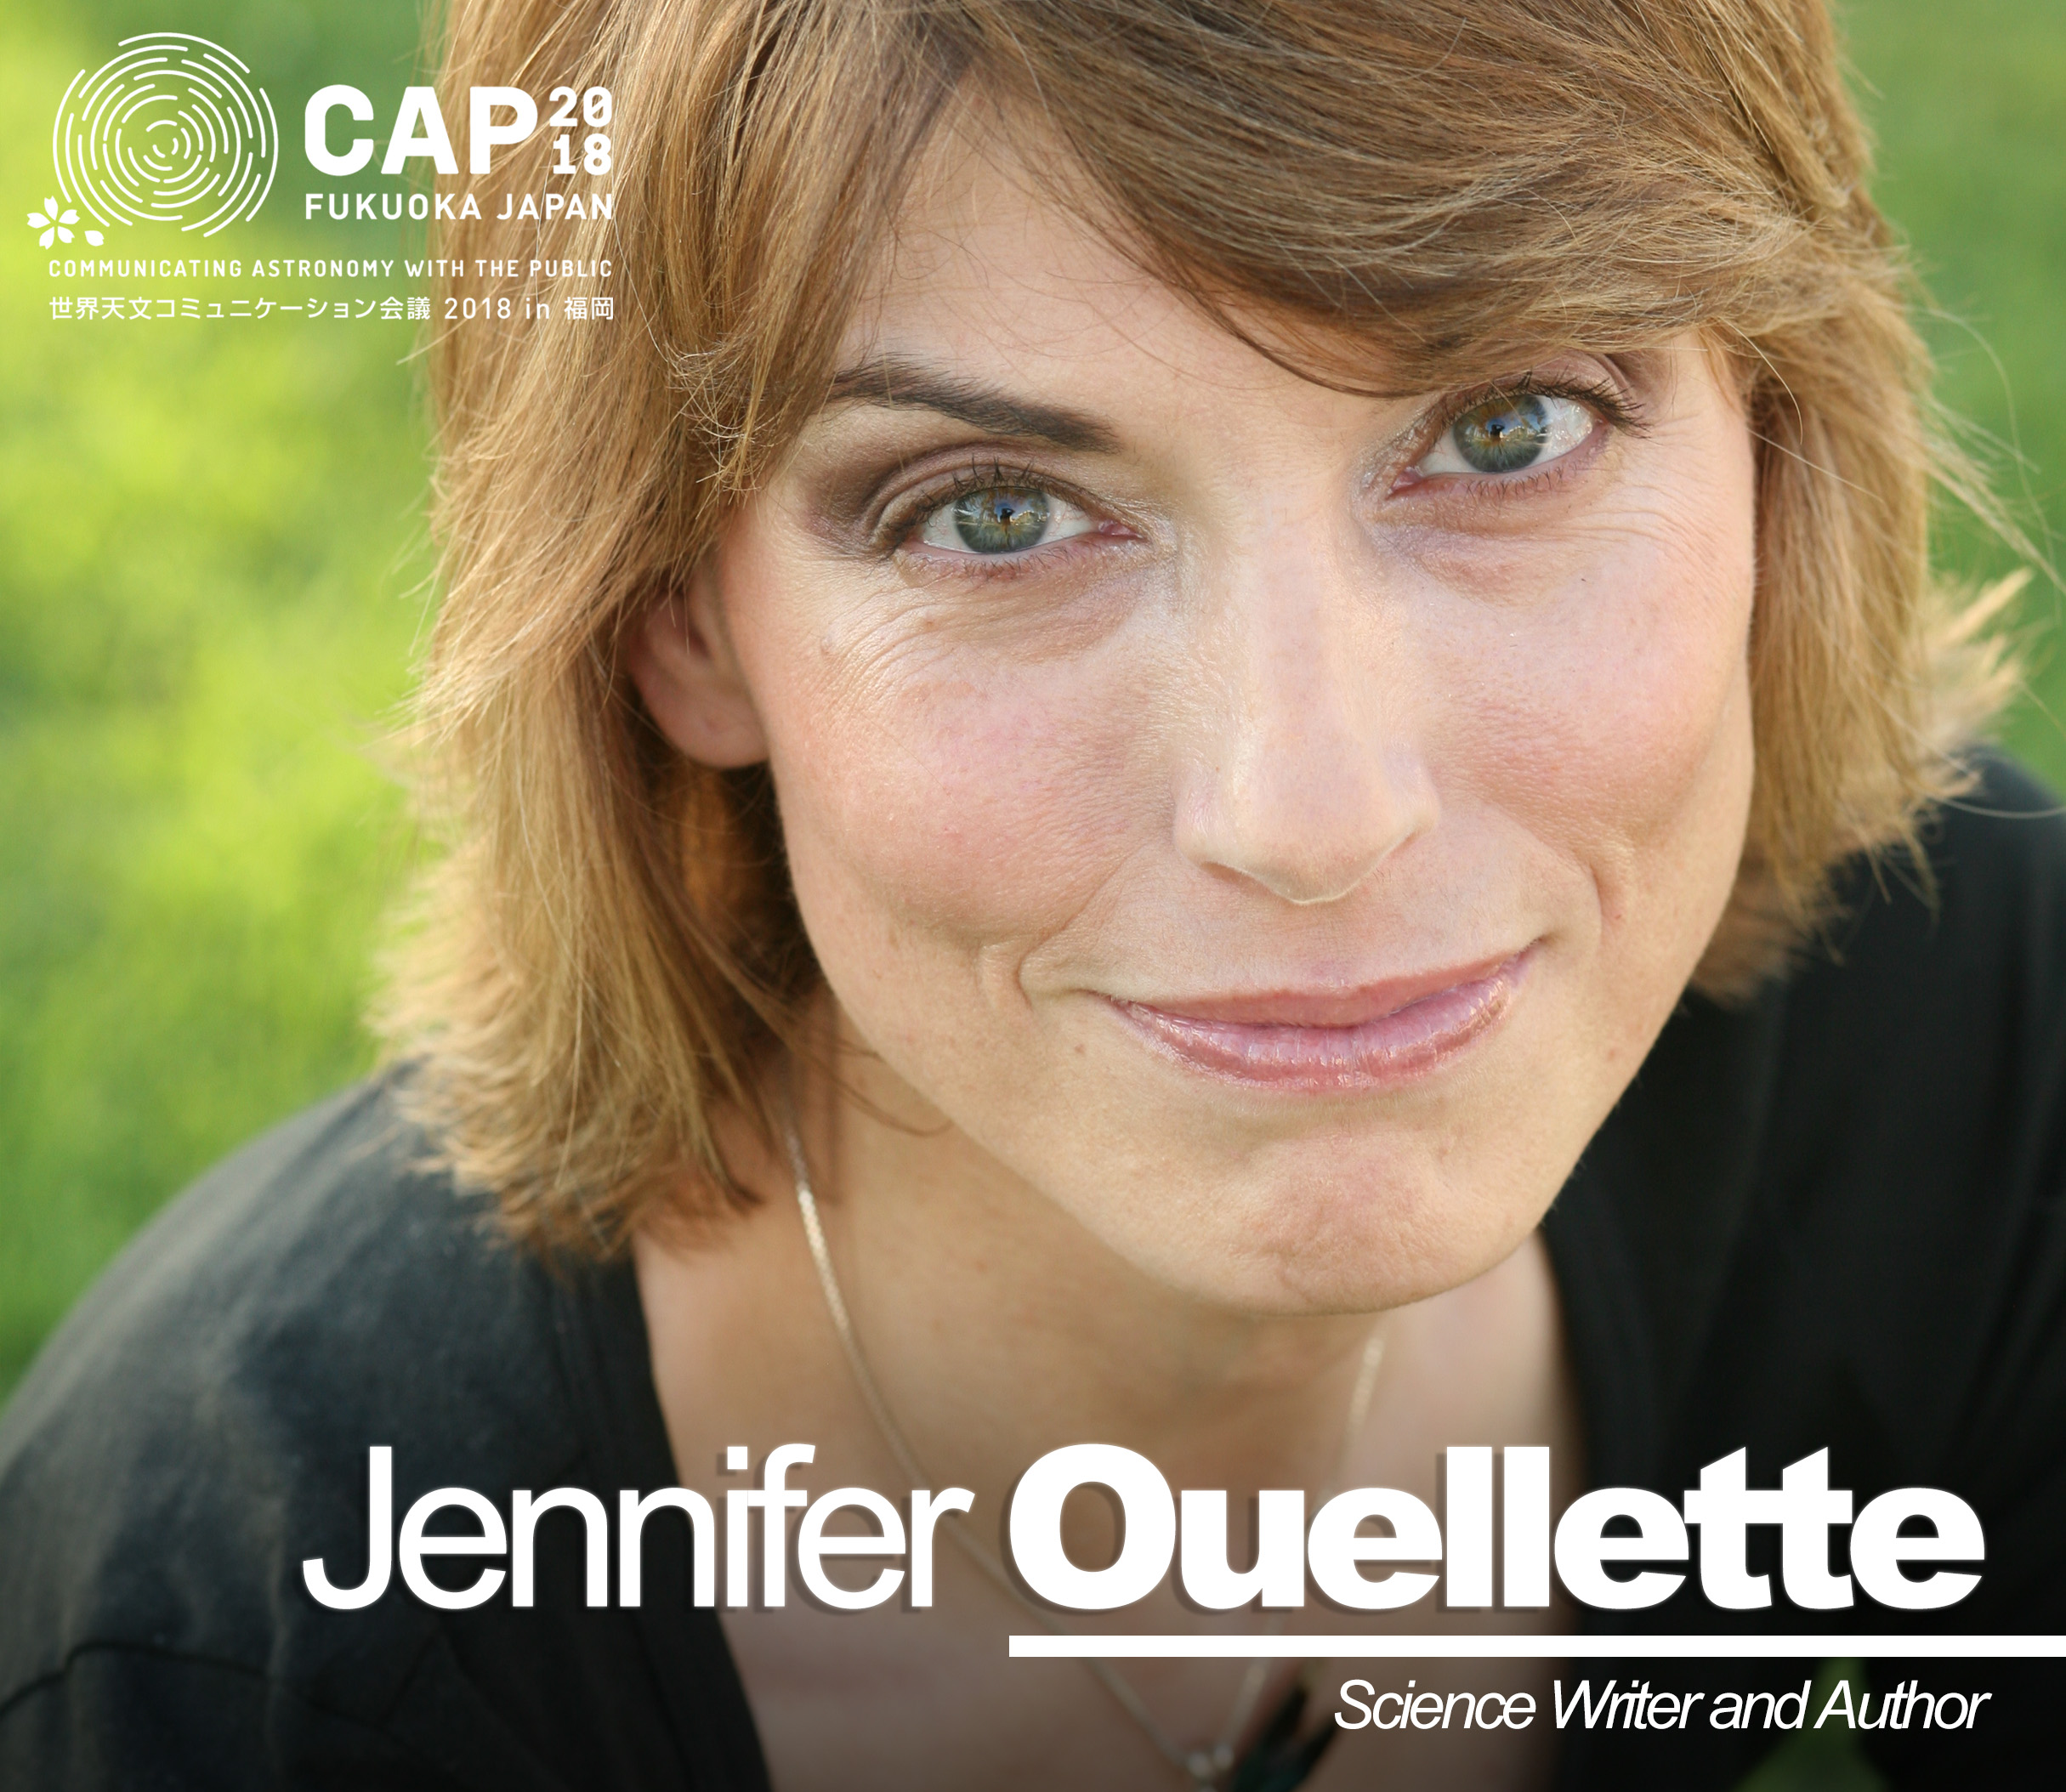 Jennifer Ouellette